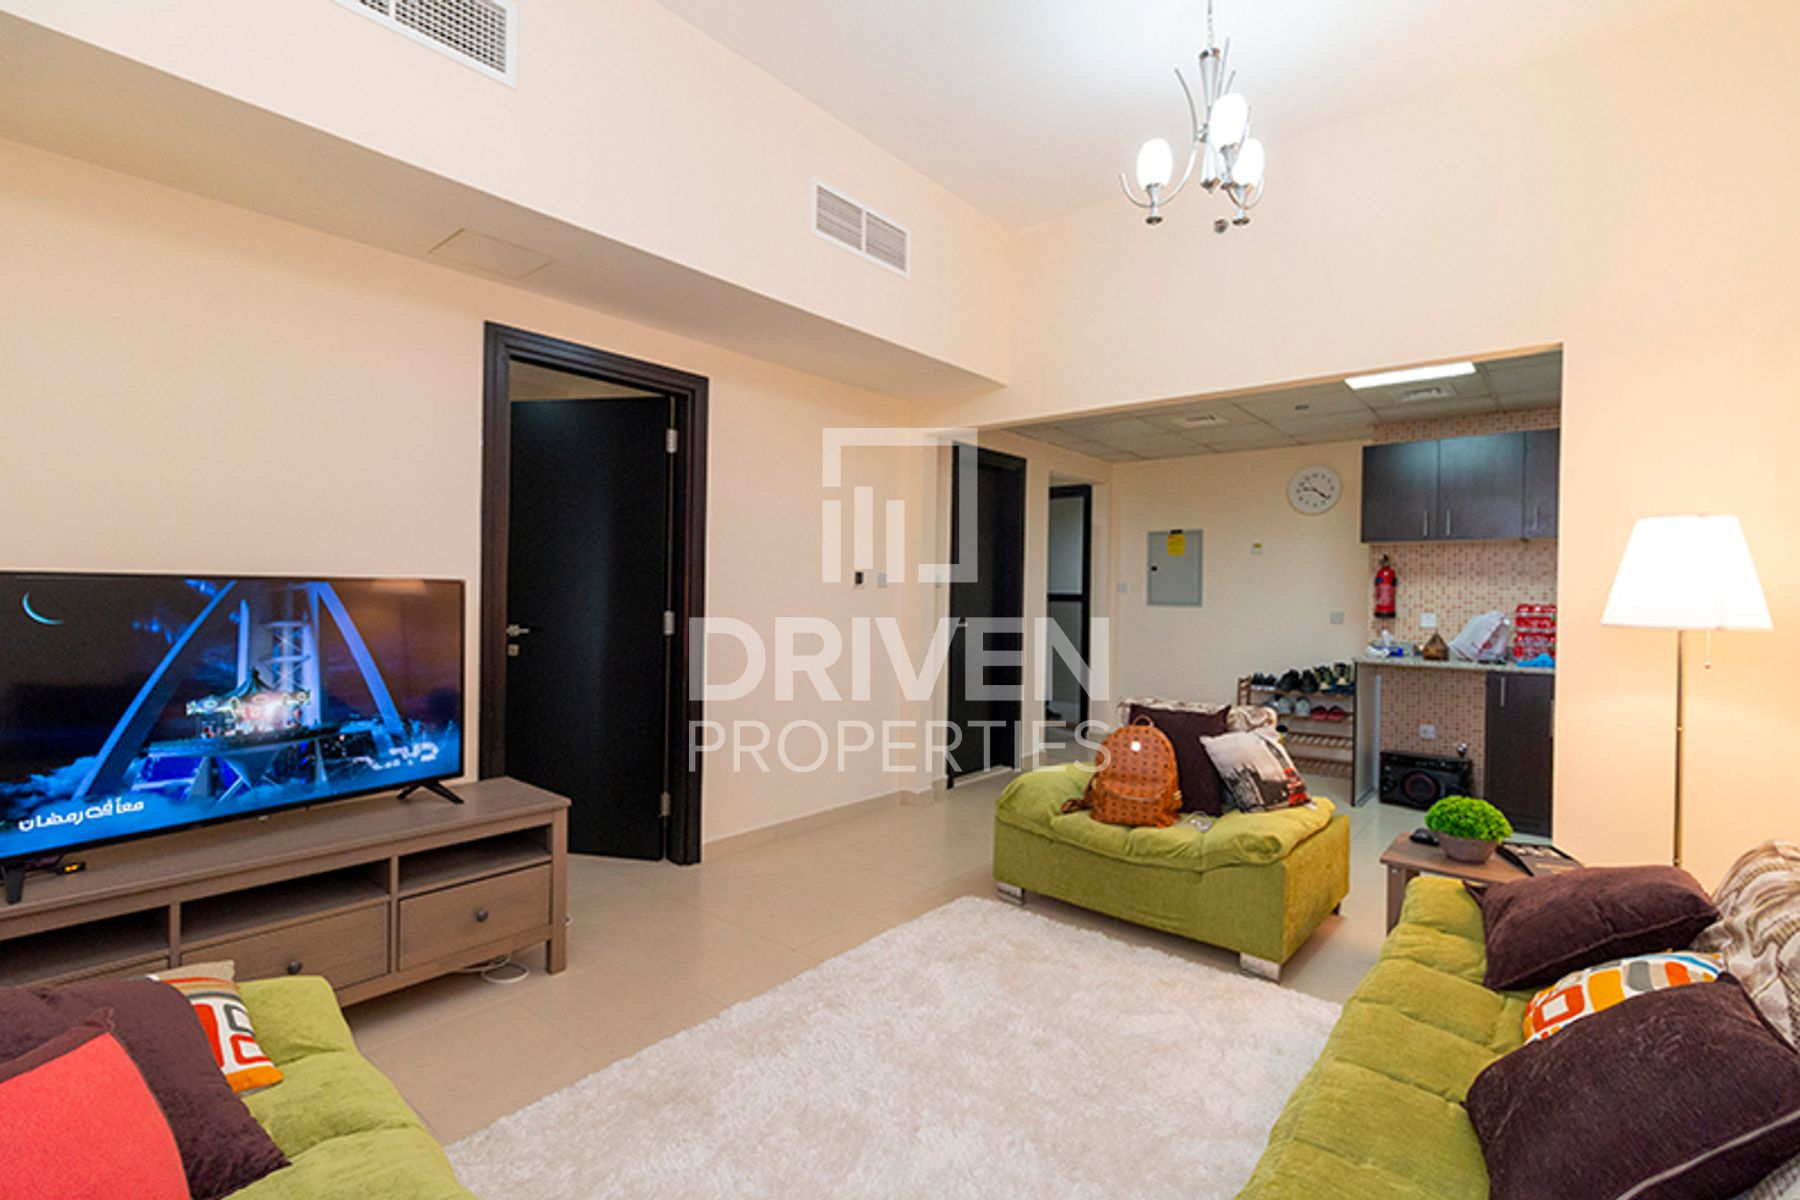 Remarkable Price, Furnished, Close to Mall